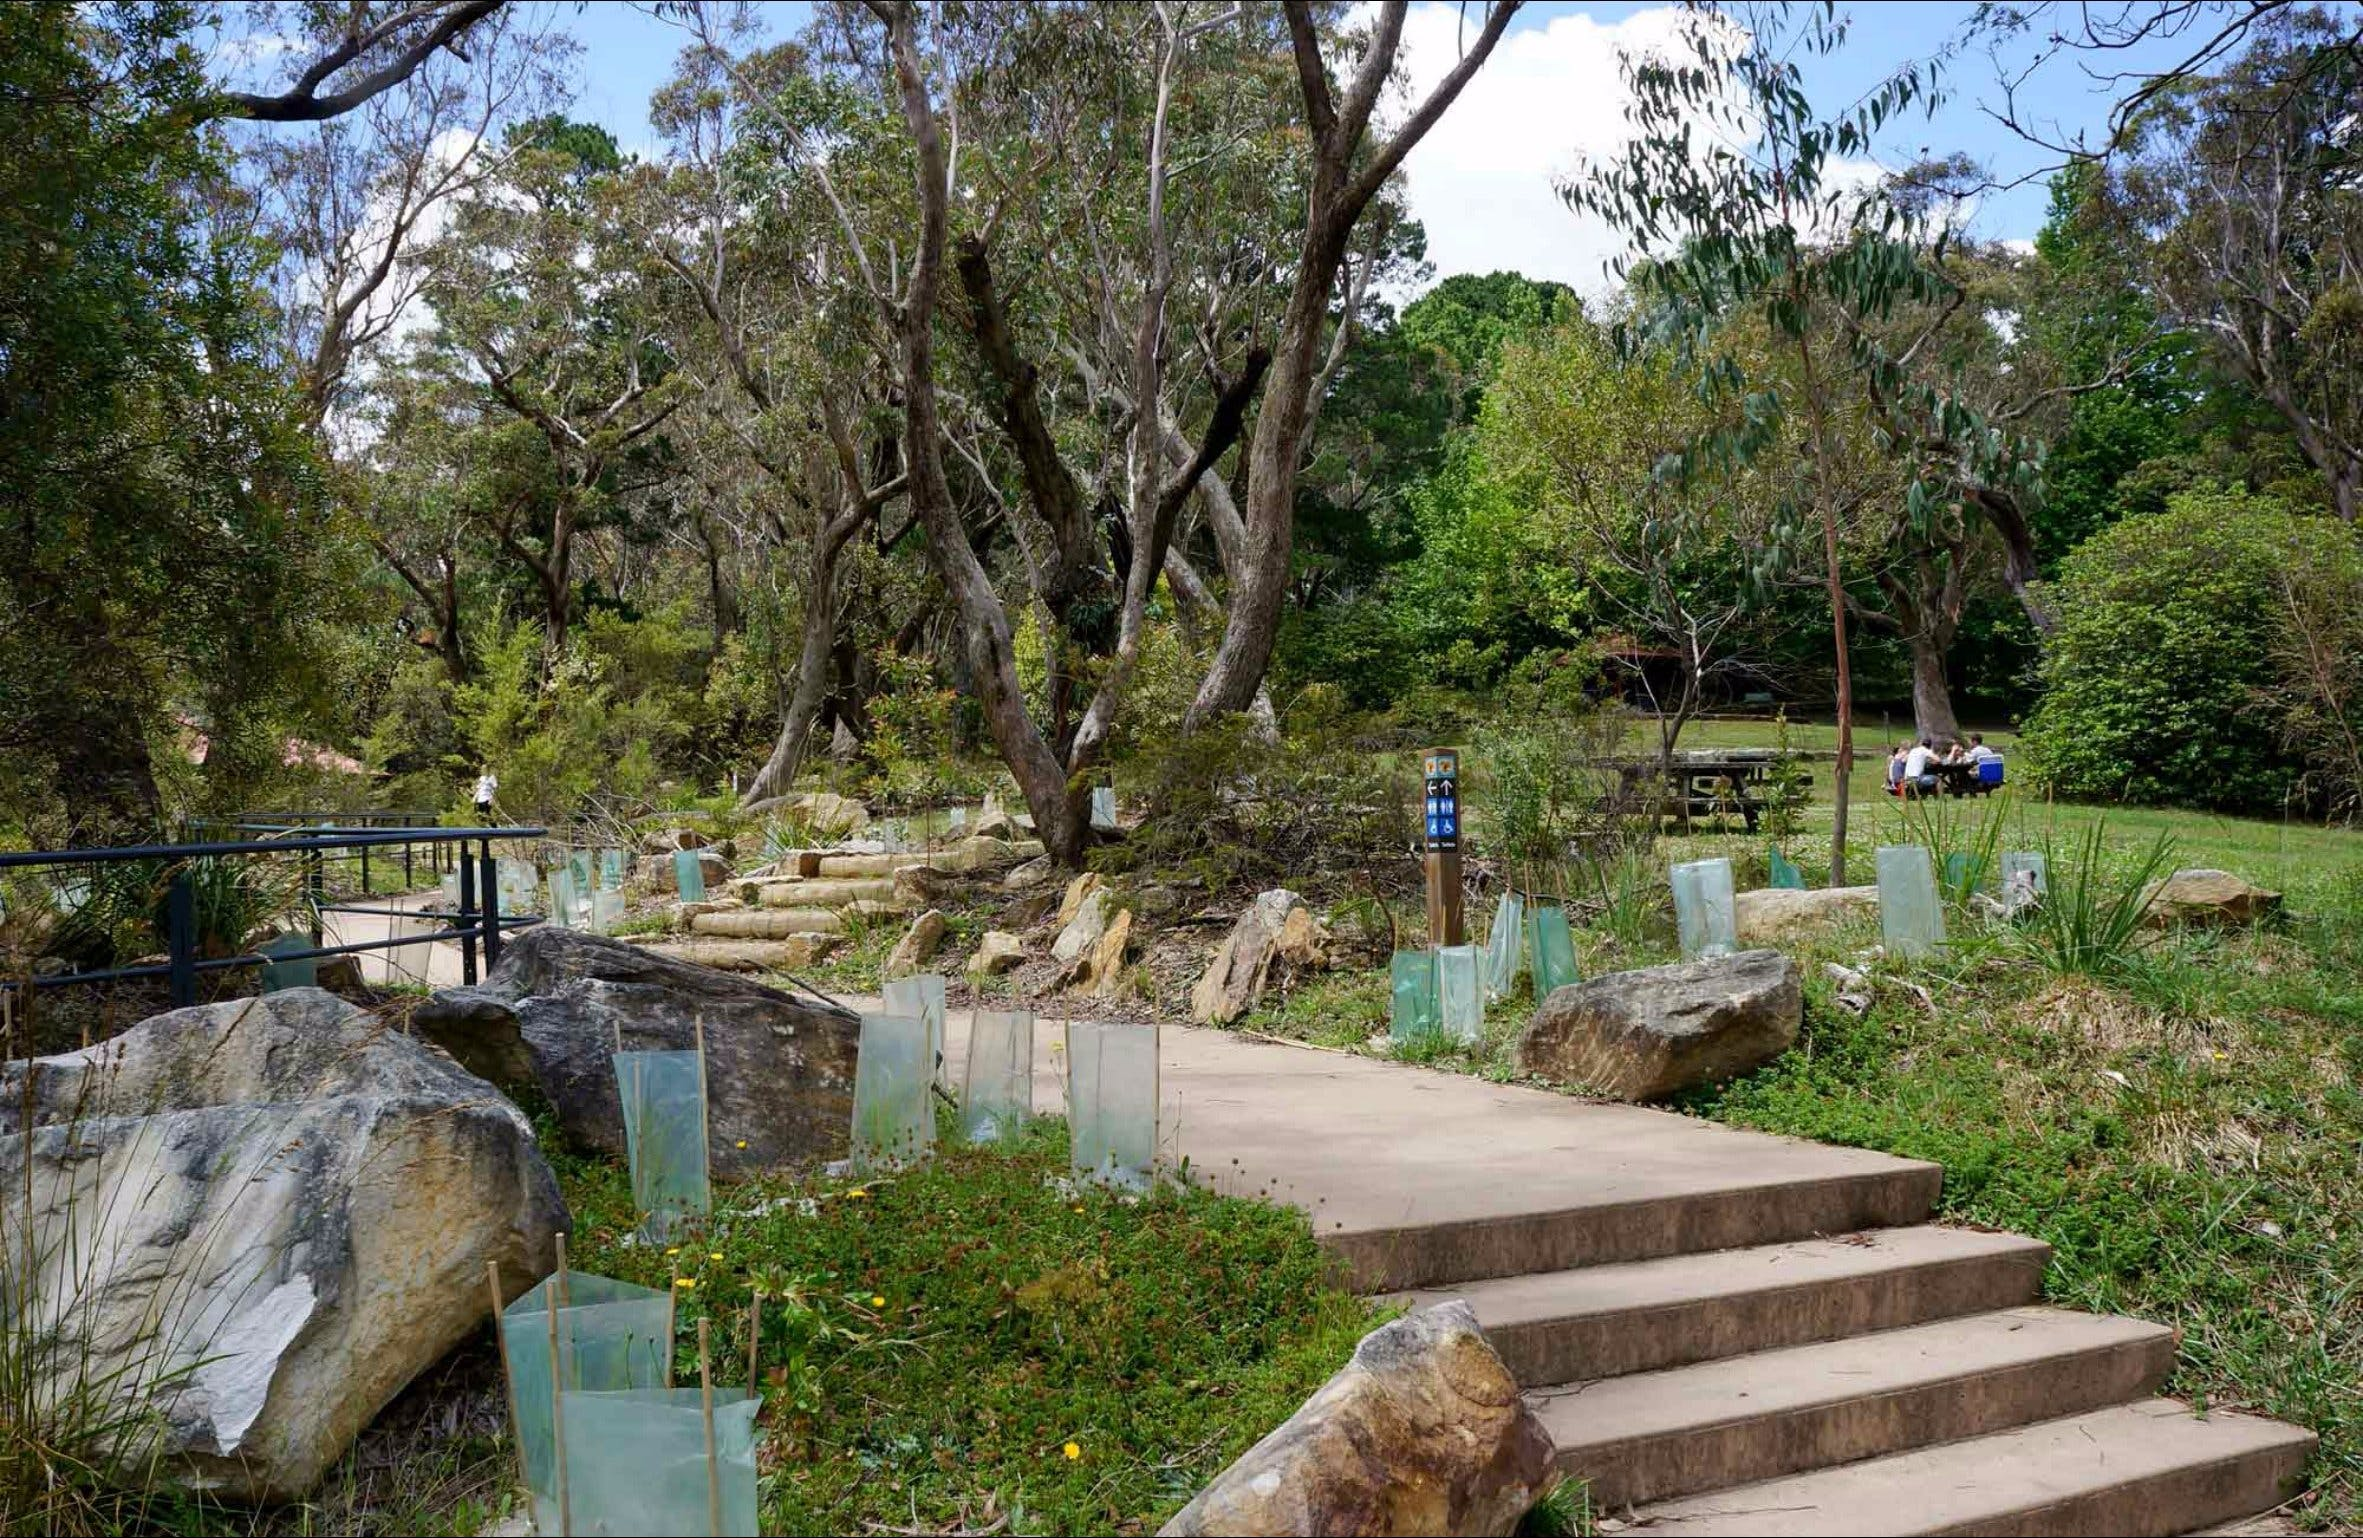 Wentworth Falls picnic area - Surfers Paradise Gold Coast